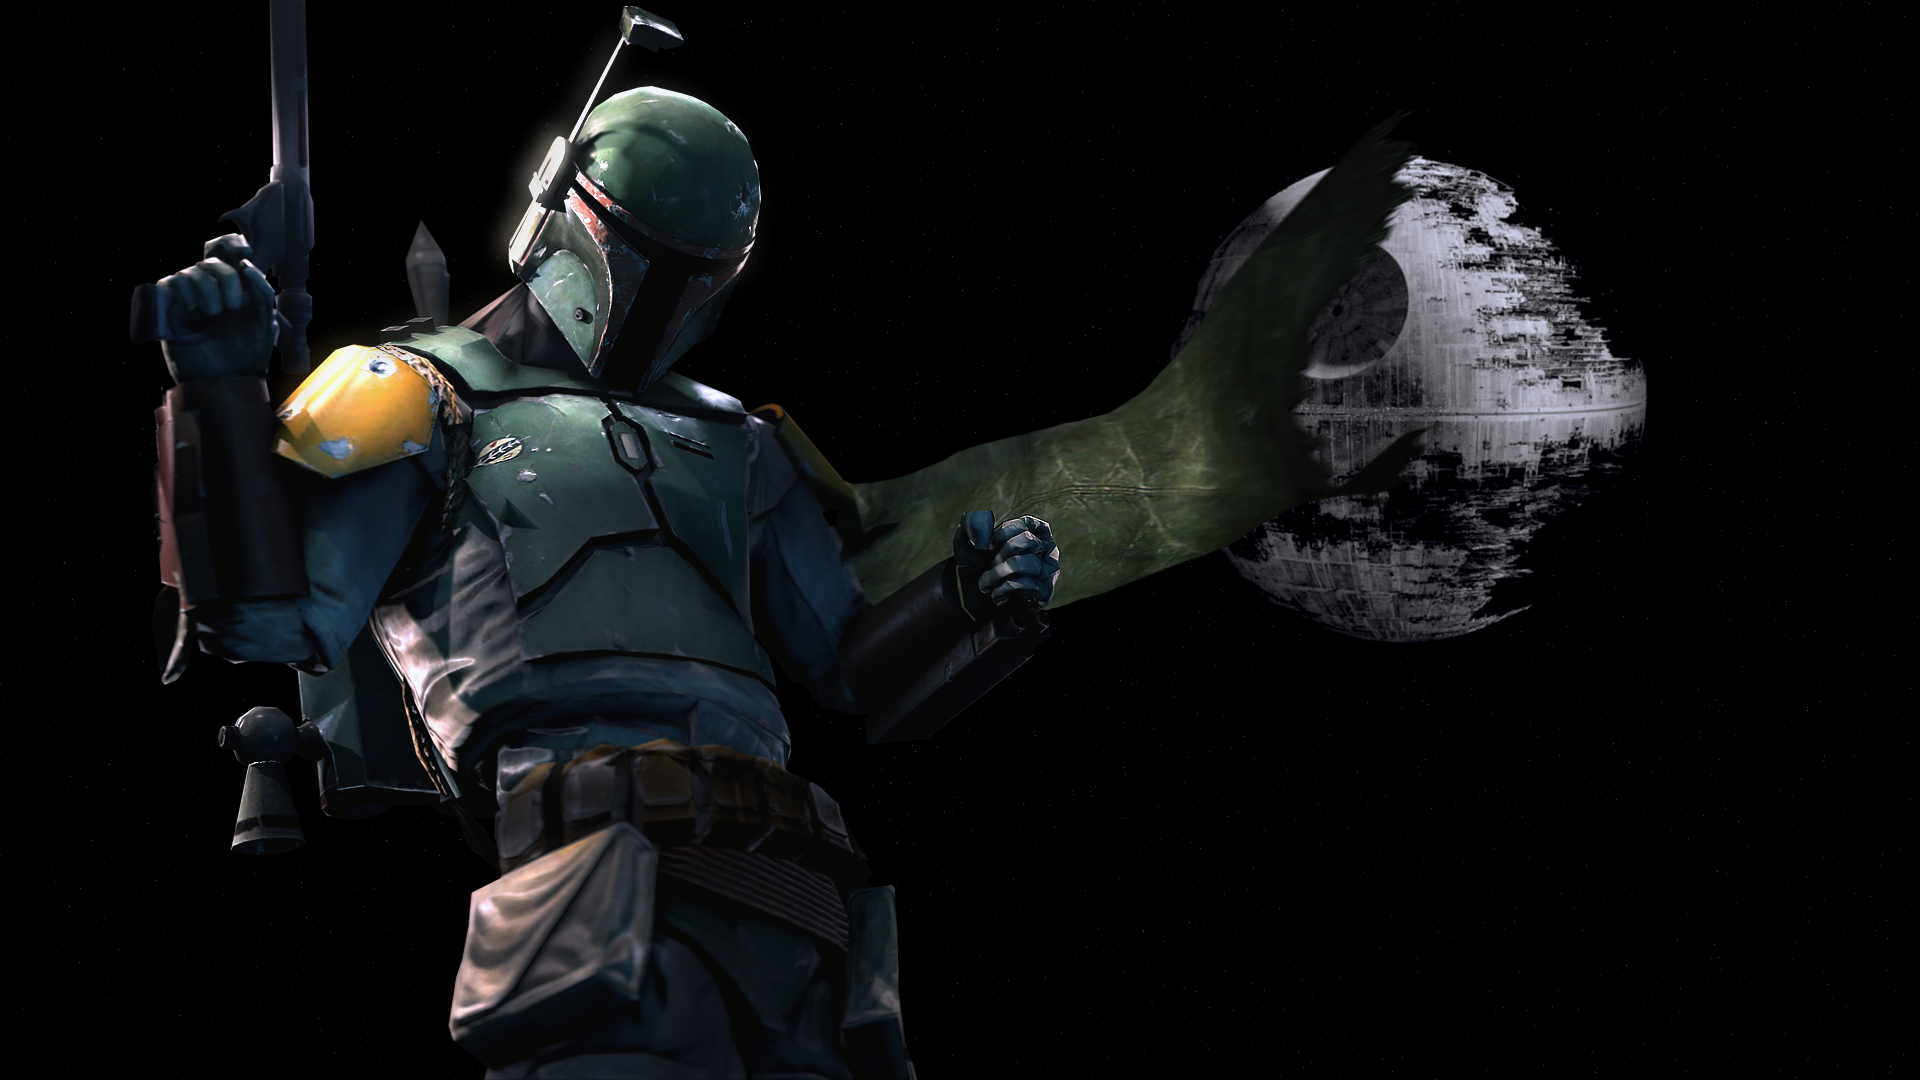 Boba Fett Wallpaper by The Combine on Deviantart fc08deviantart 1920x1080